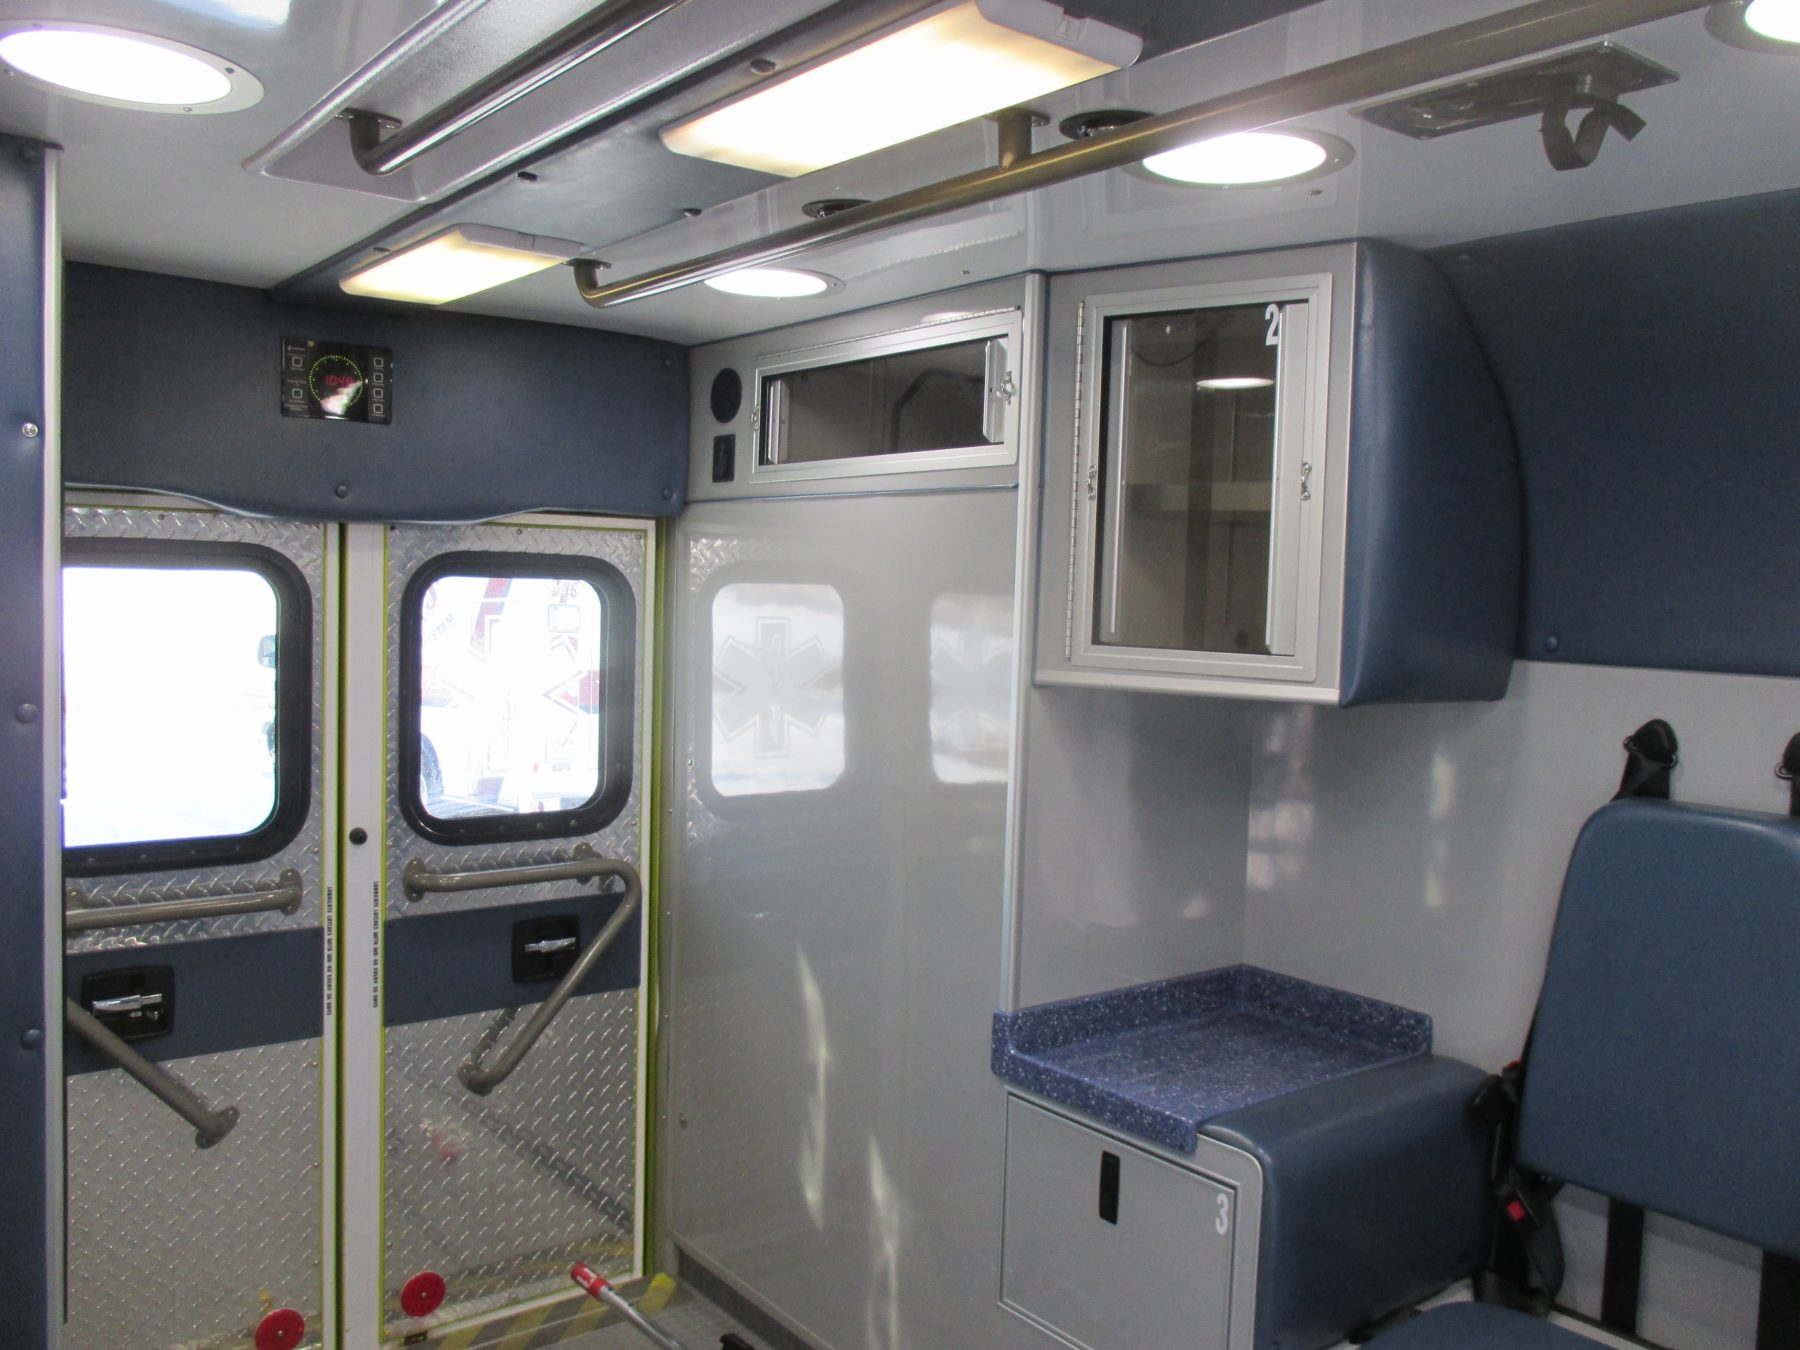 2010 Chevrolet G4500 Type 3 Ambulance For Sale – Picture 10